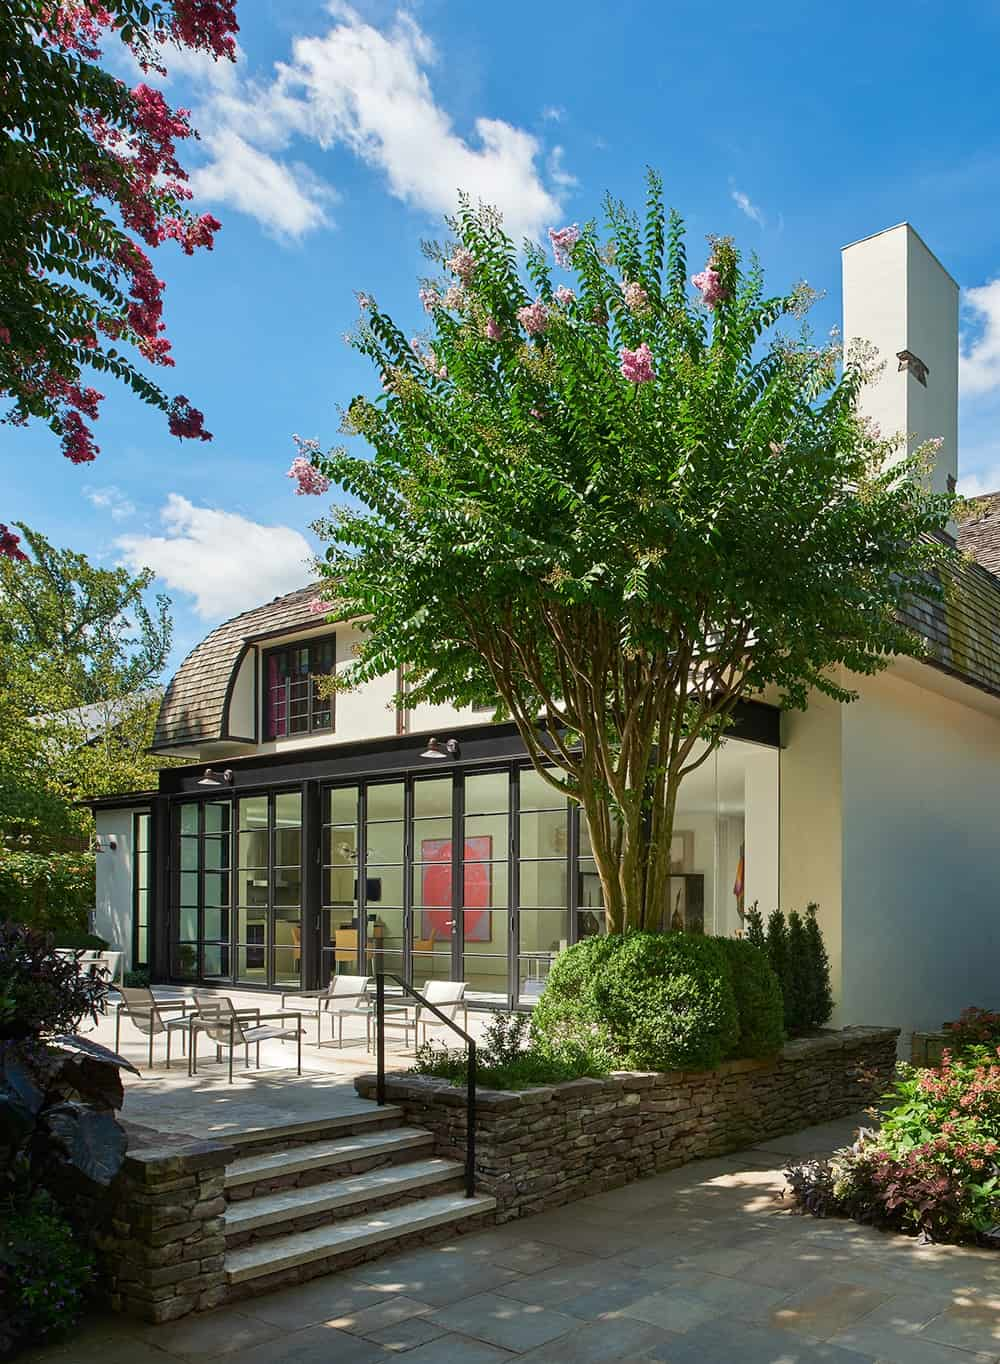 This is the side of the house with wide glass walls that retract to open the kitchen and dining area to the outdoor patio that is adorned with a large flowering tree.